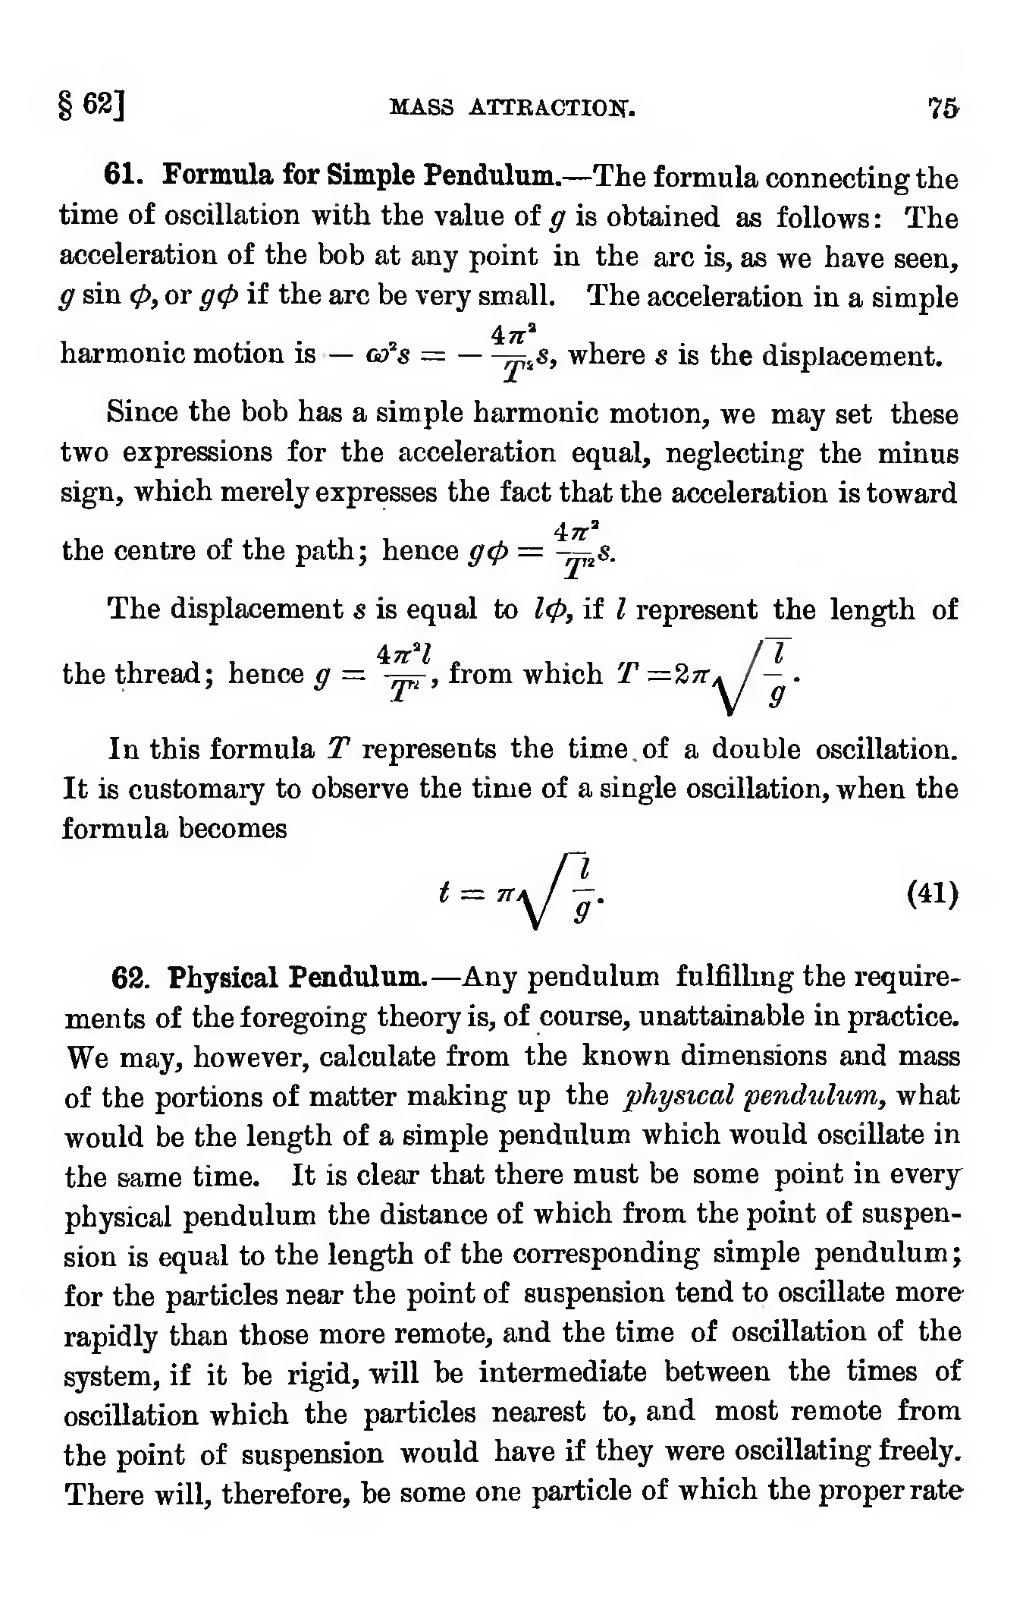 Page:Elementary Text-book of Physics (Anthony, 1897) djvu/89